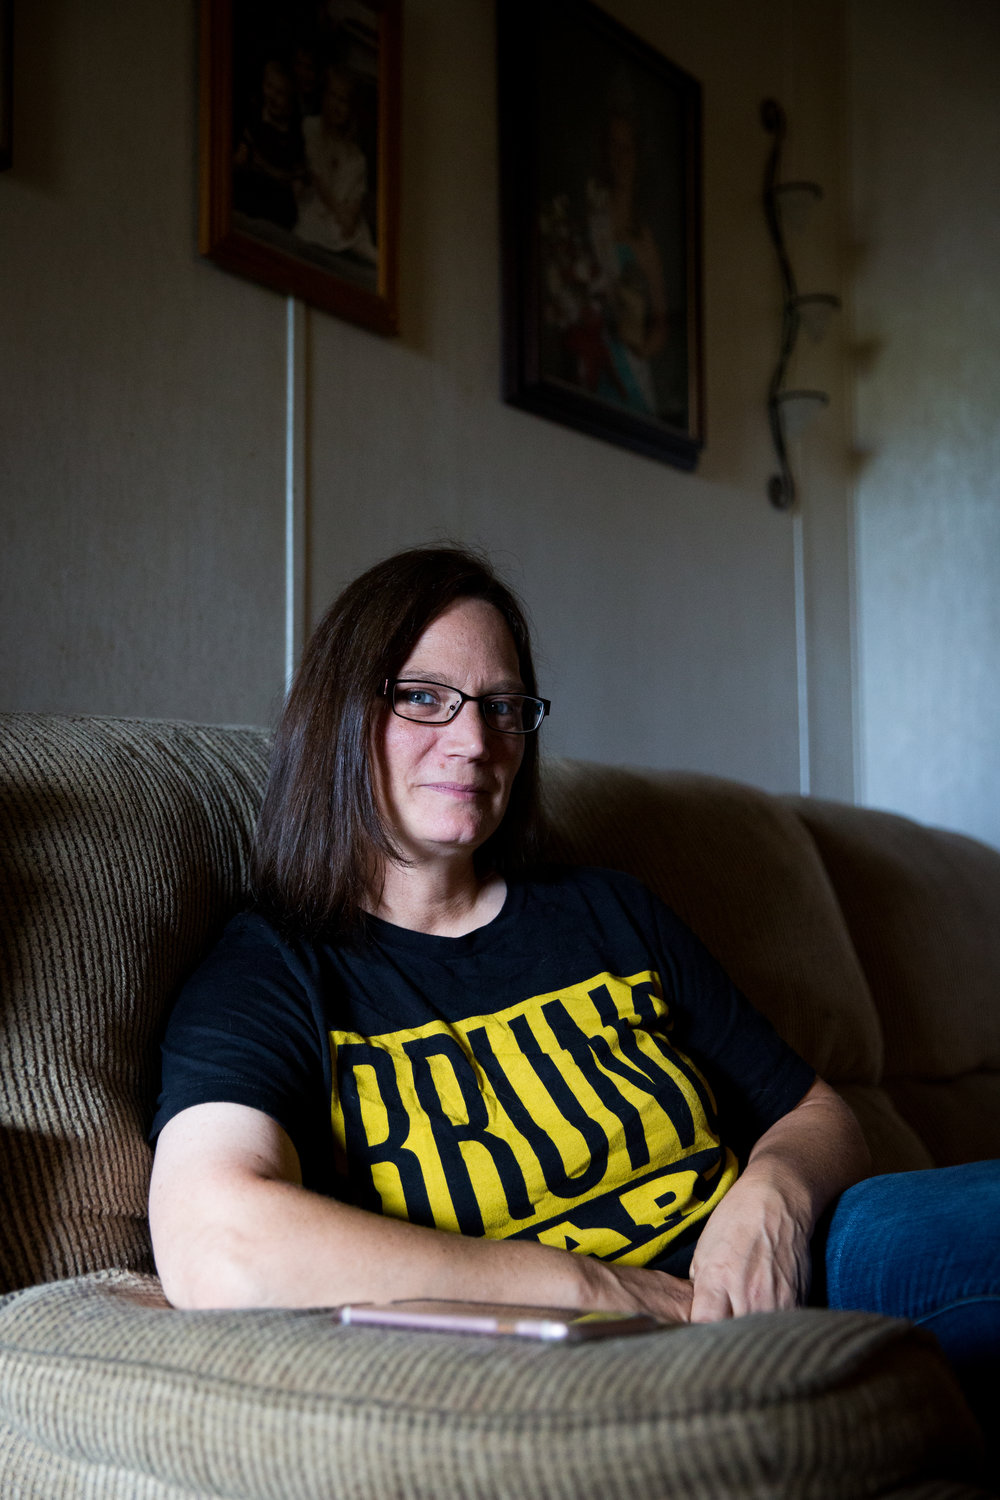 Missy Mullins poses for a portrait in her living room in Logan. Missy's son is addicted to heroin and meth, and she has struggled to find support for family members dealing with a loved one's addiction.